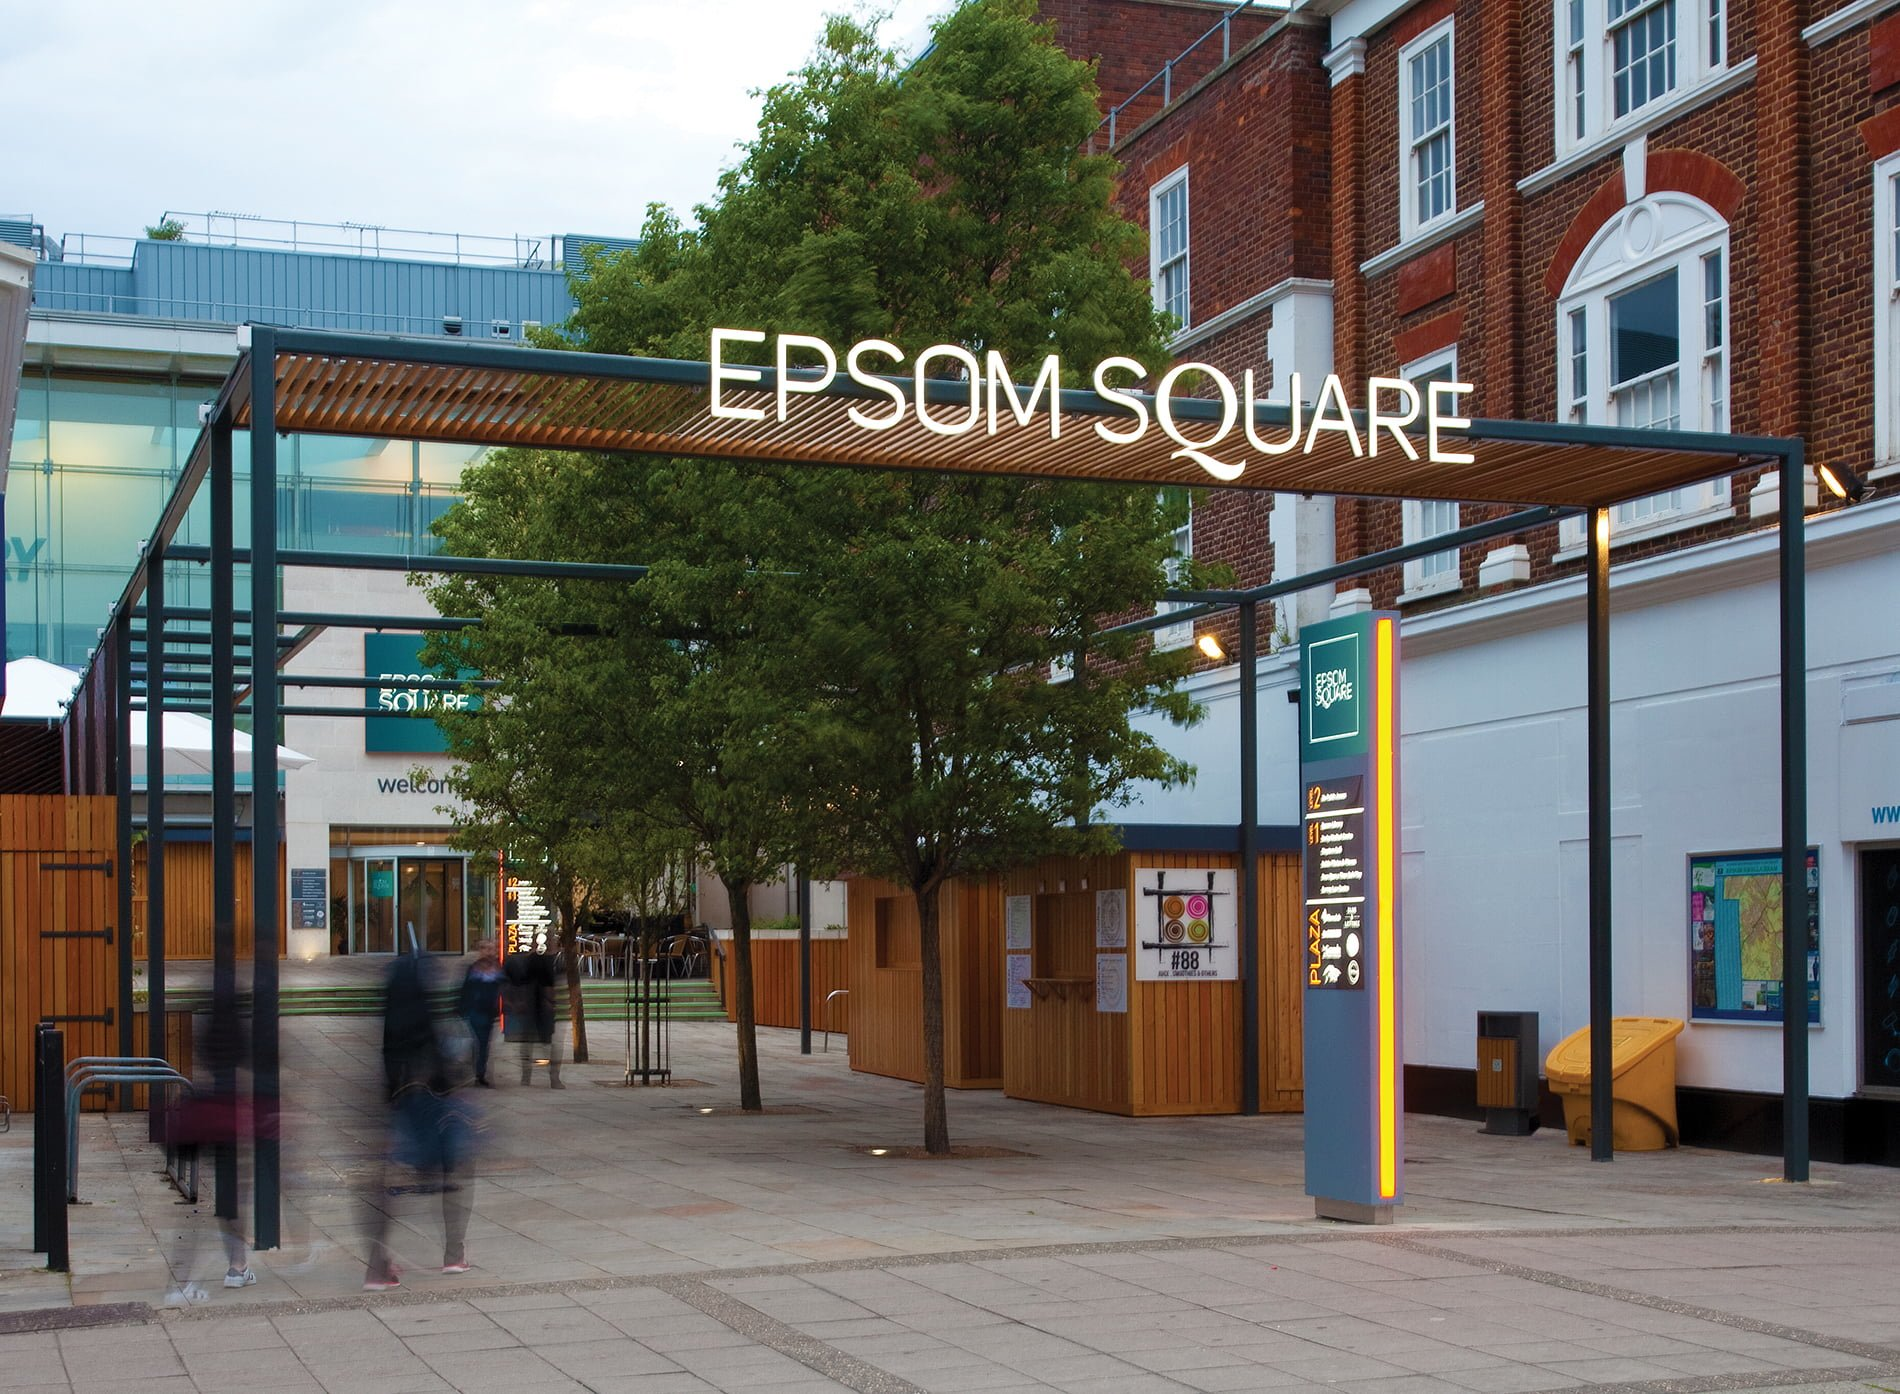 Epsom Square shopping centre exterior of entrance signage